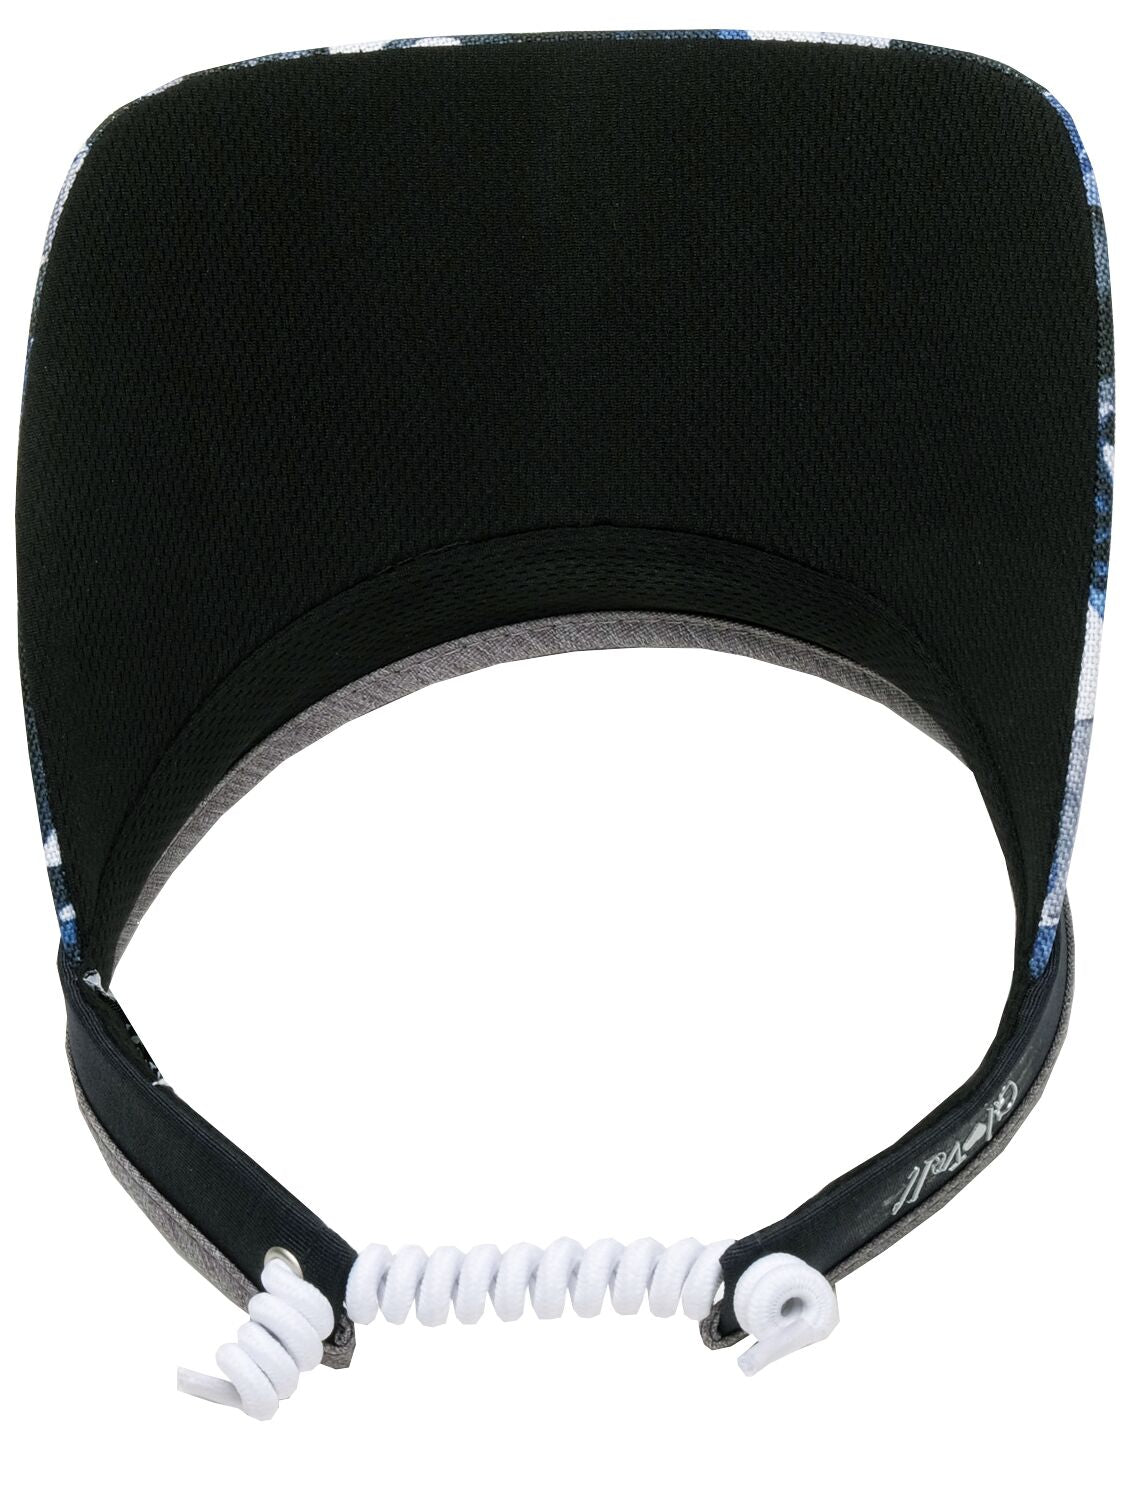 INDIGO POPPY Women's Golf Visor